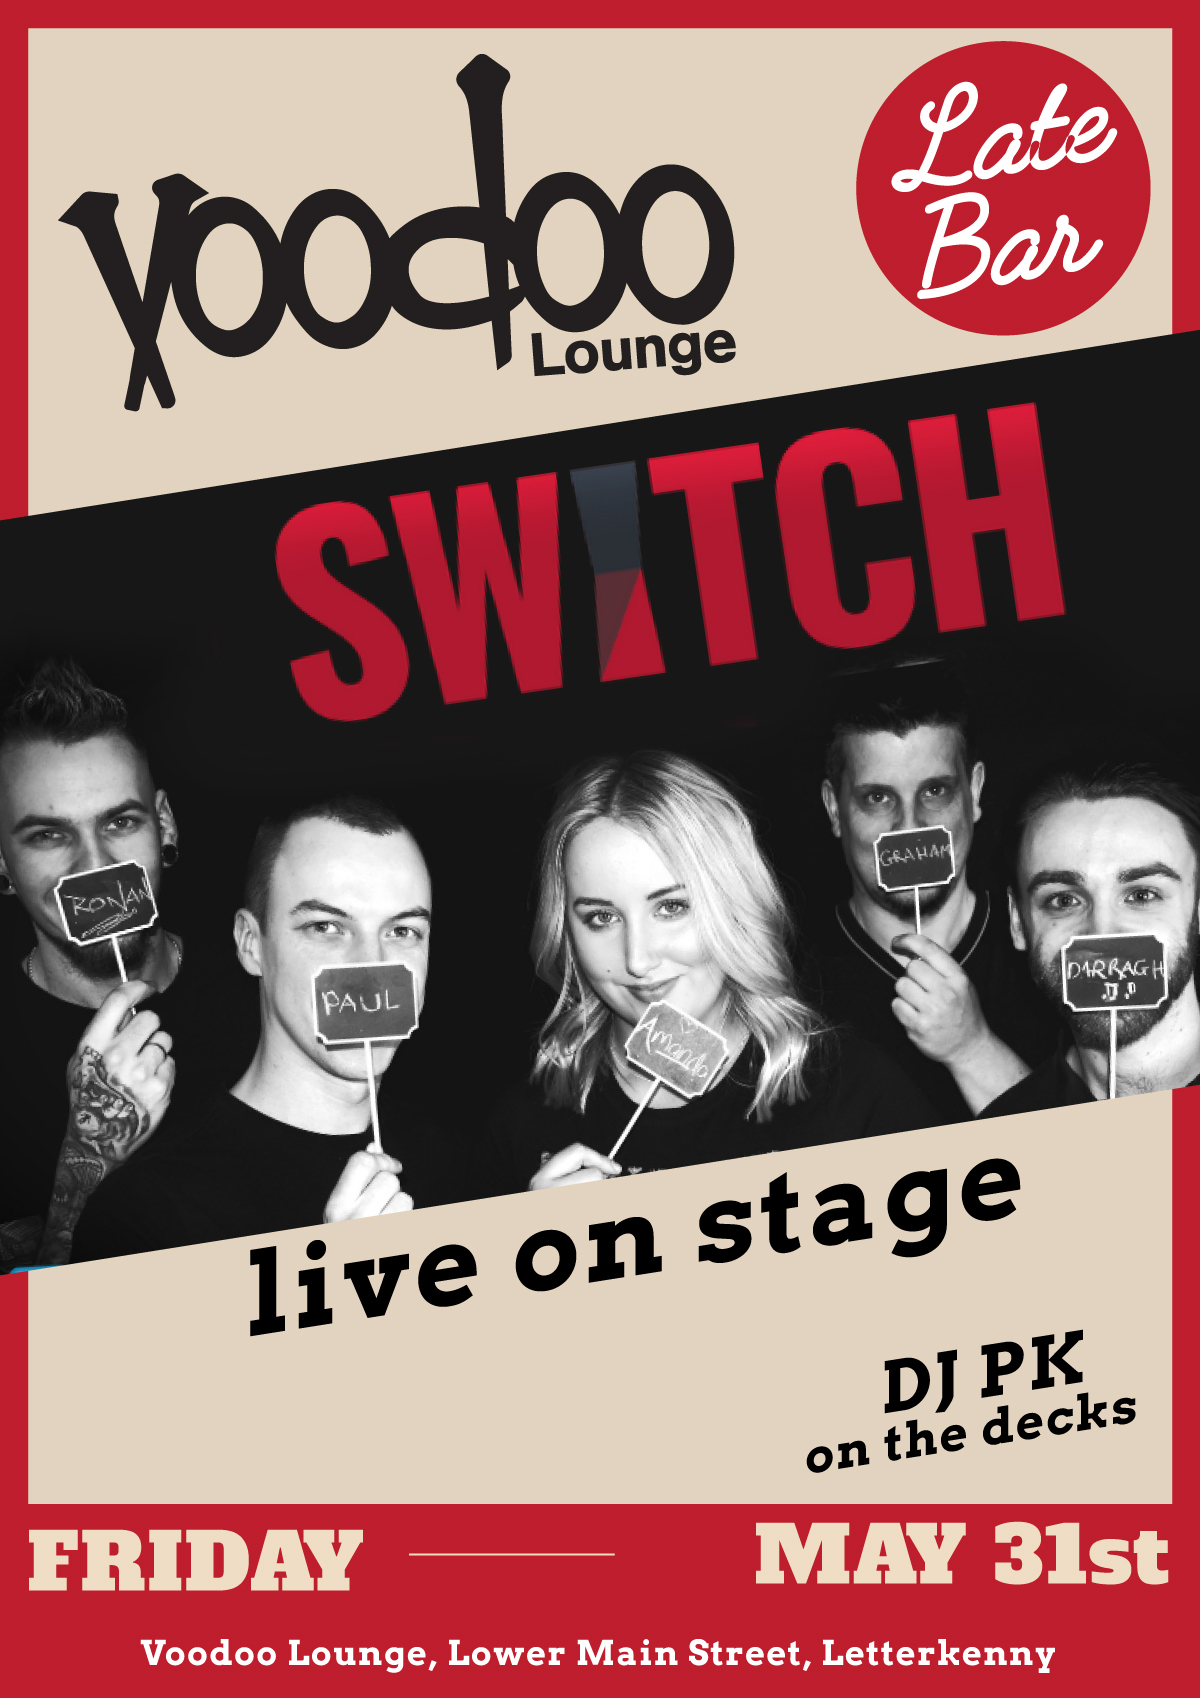 voodoo-venue--friday---switch---fri-may-31-2019.jpg